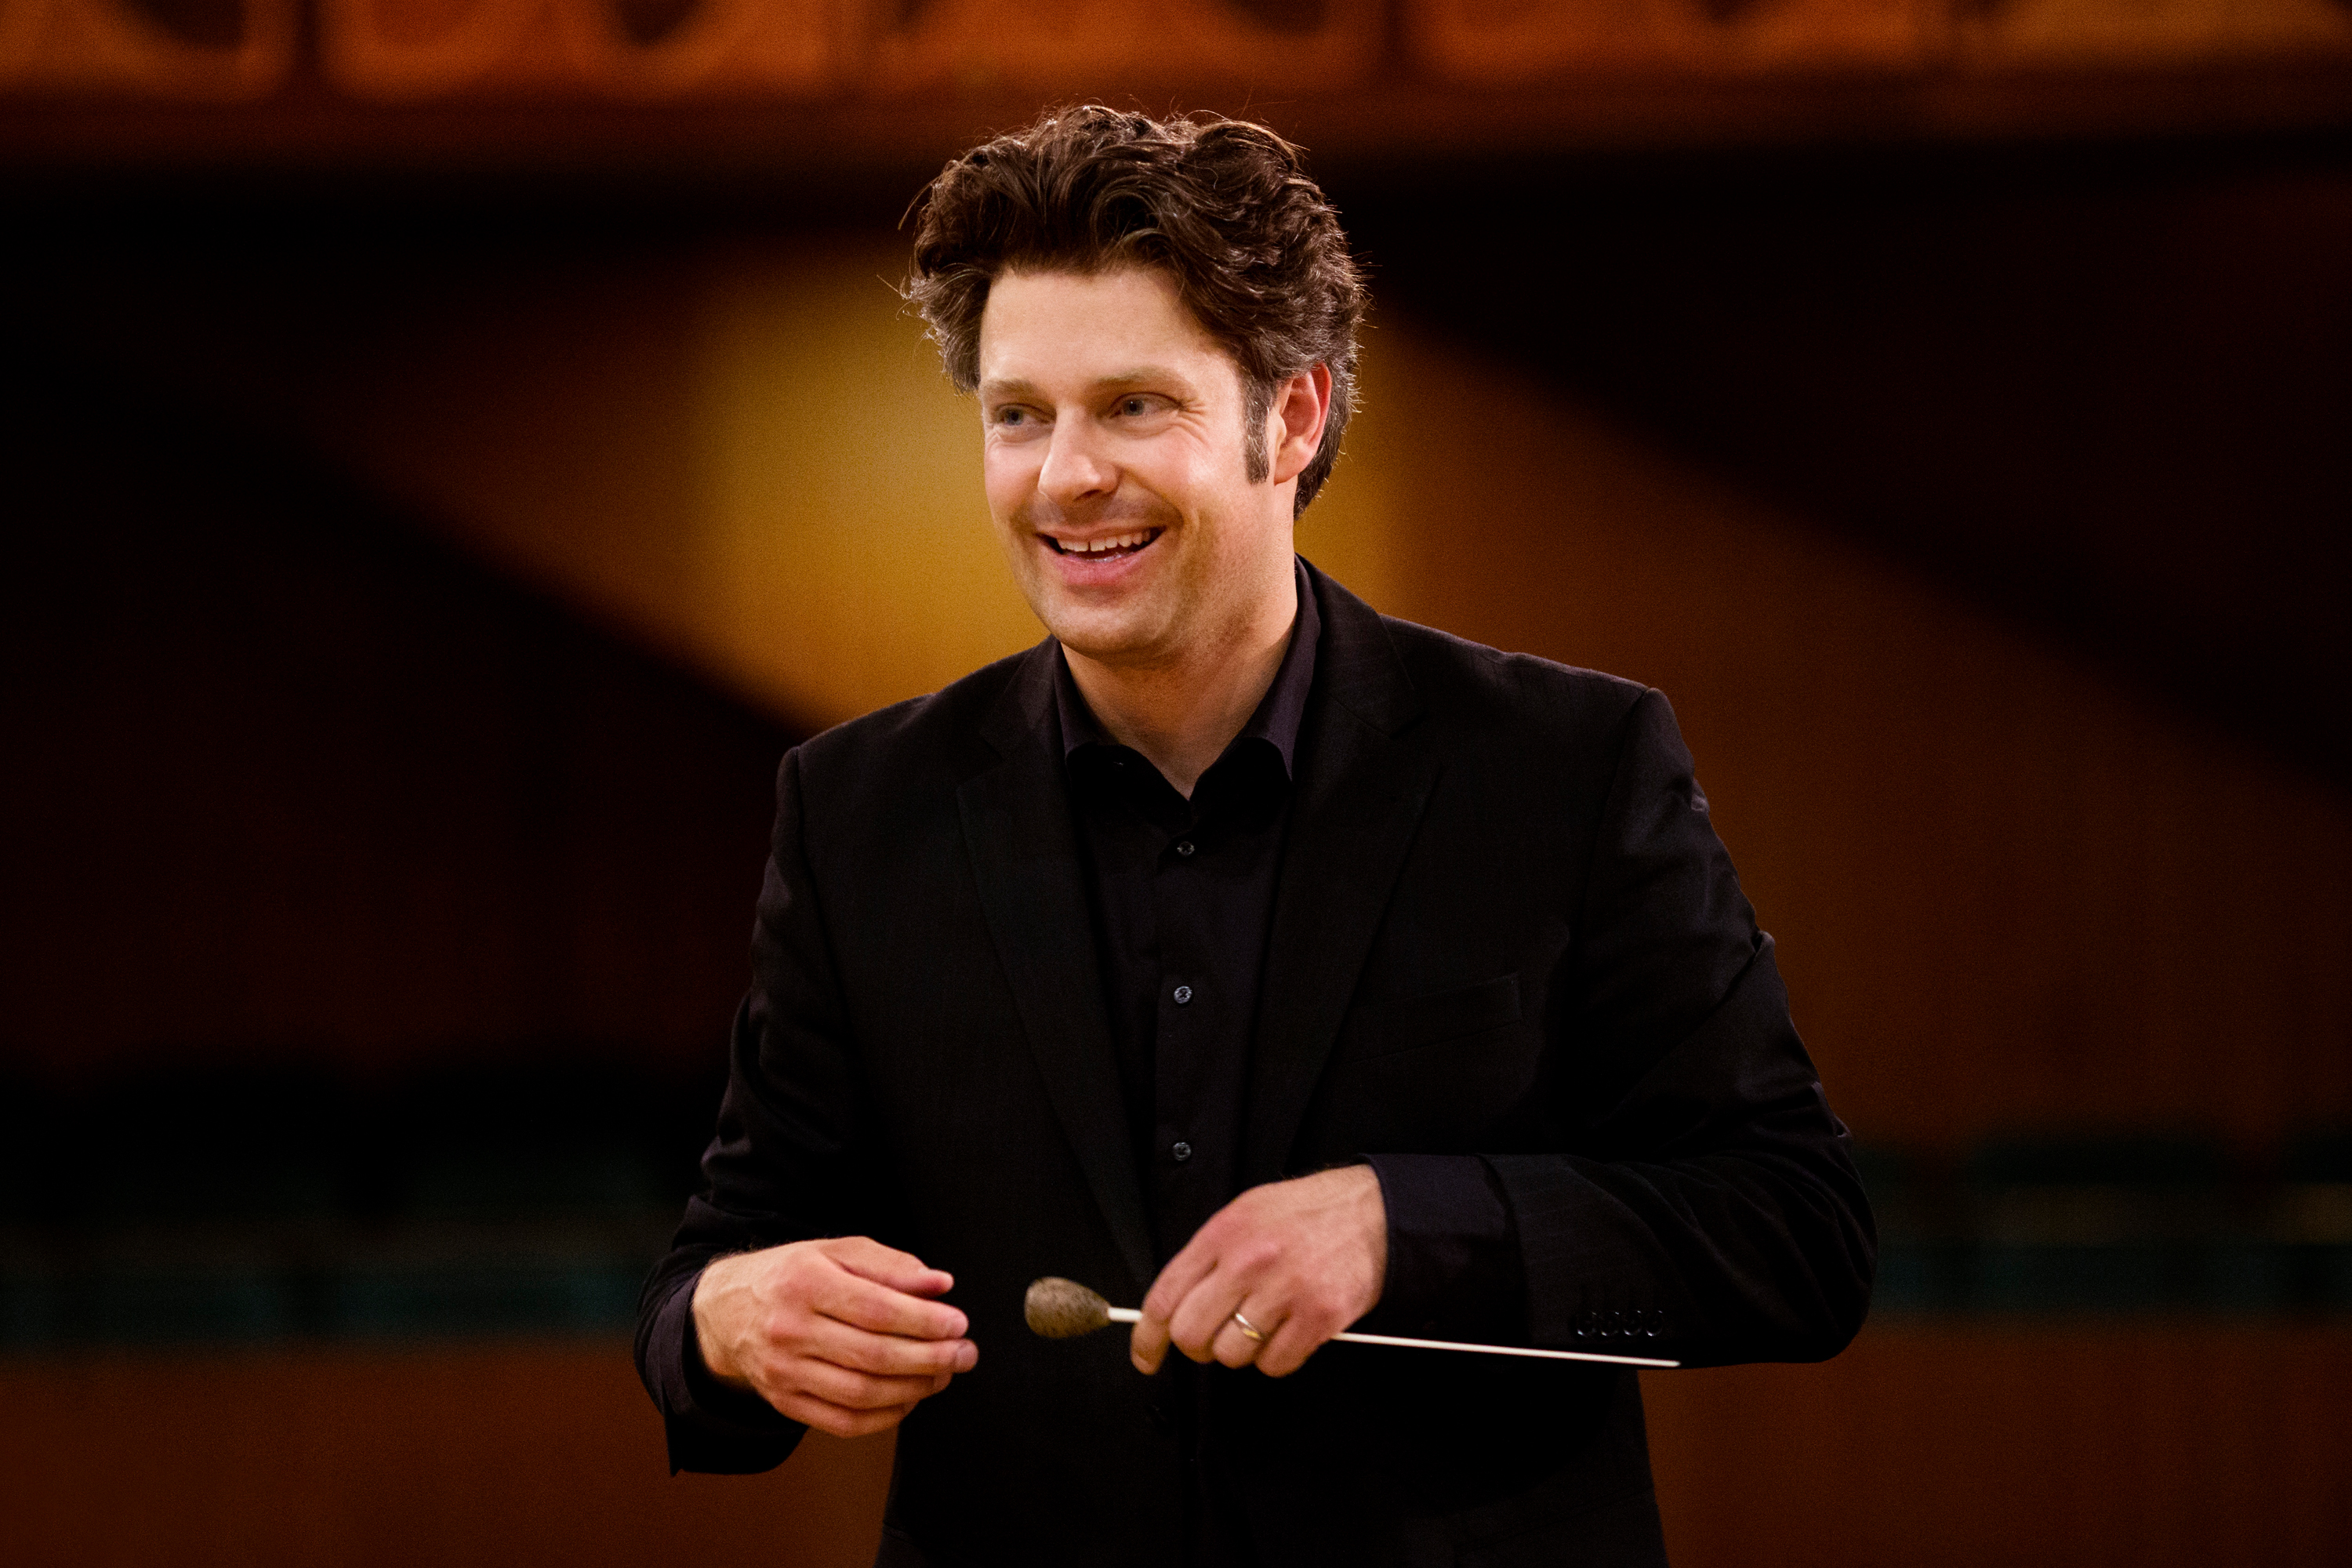 Joseph Bastian debuts with the Orchestre symphonique et lyrique de Nancy